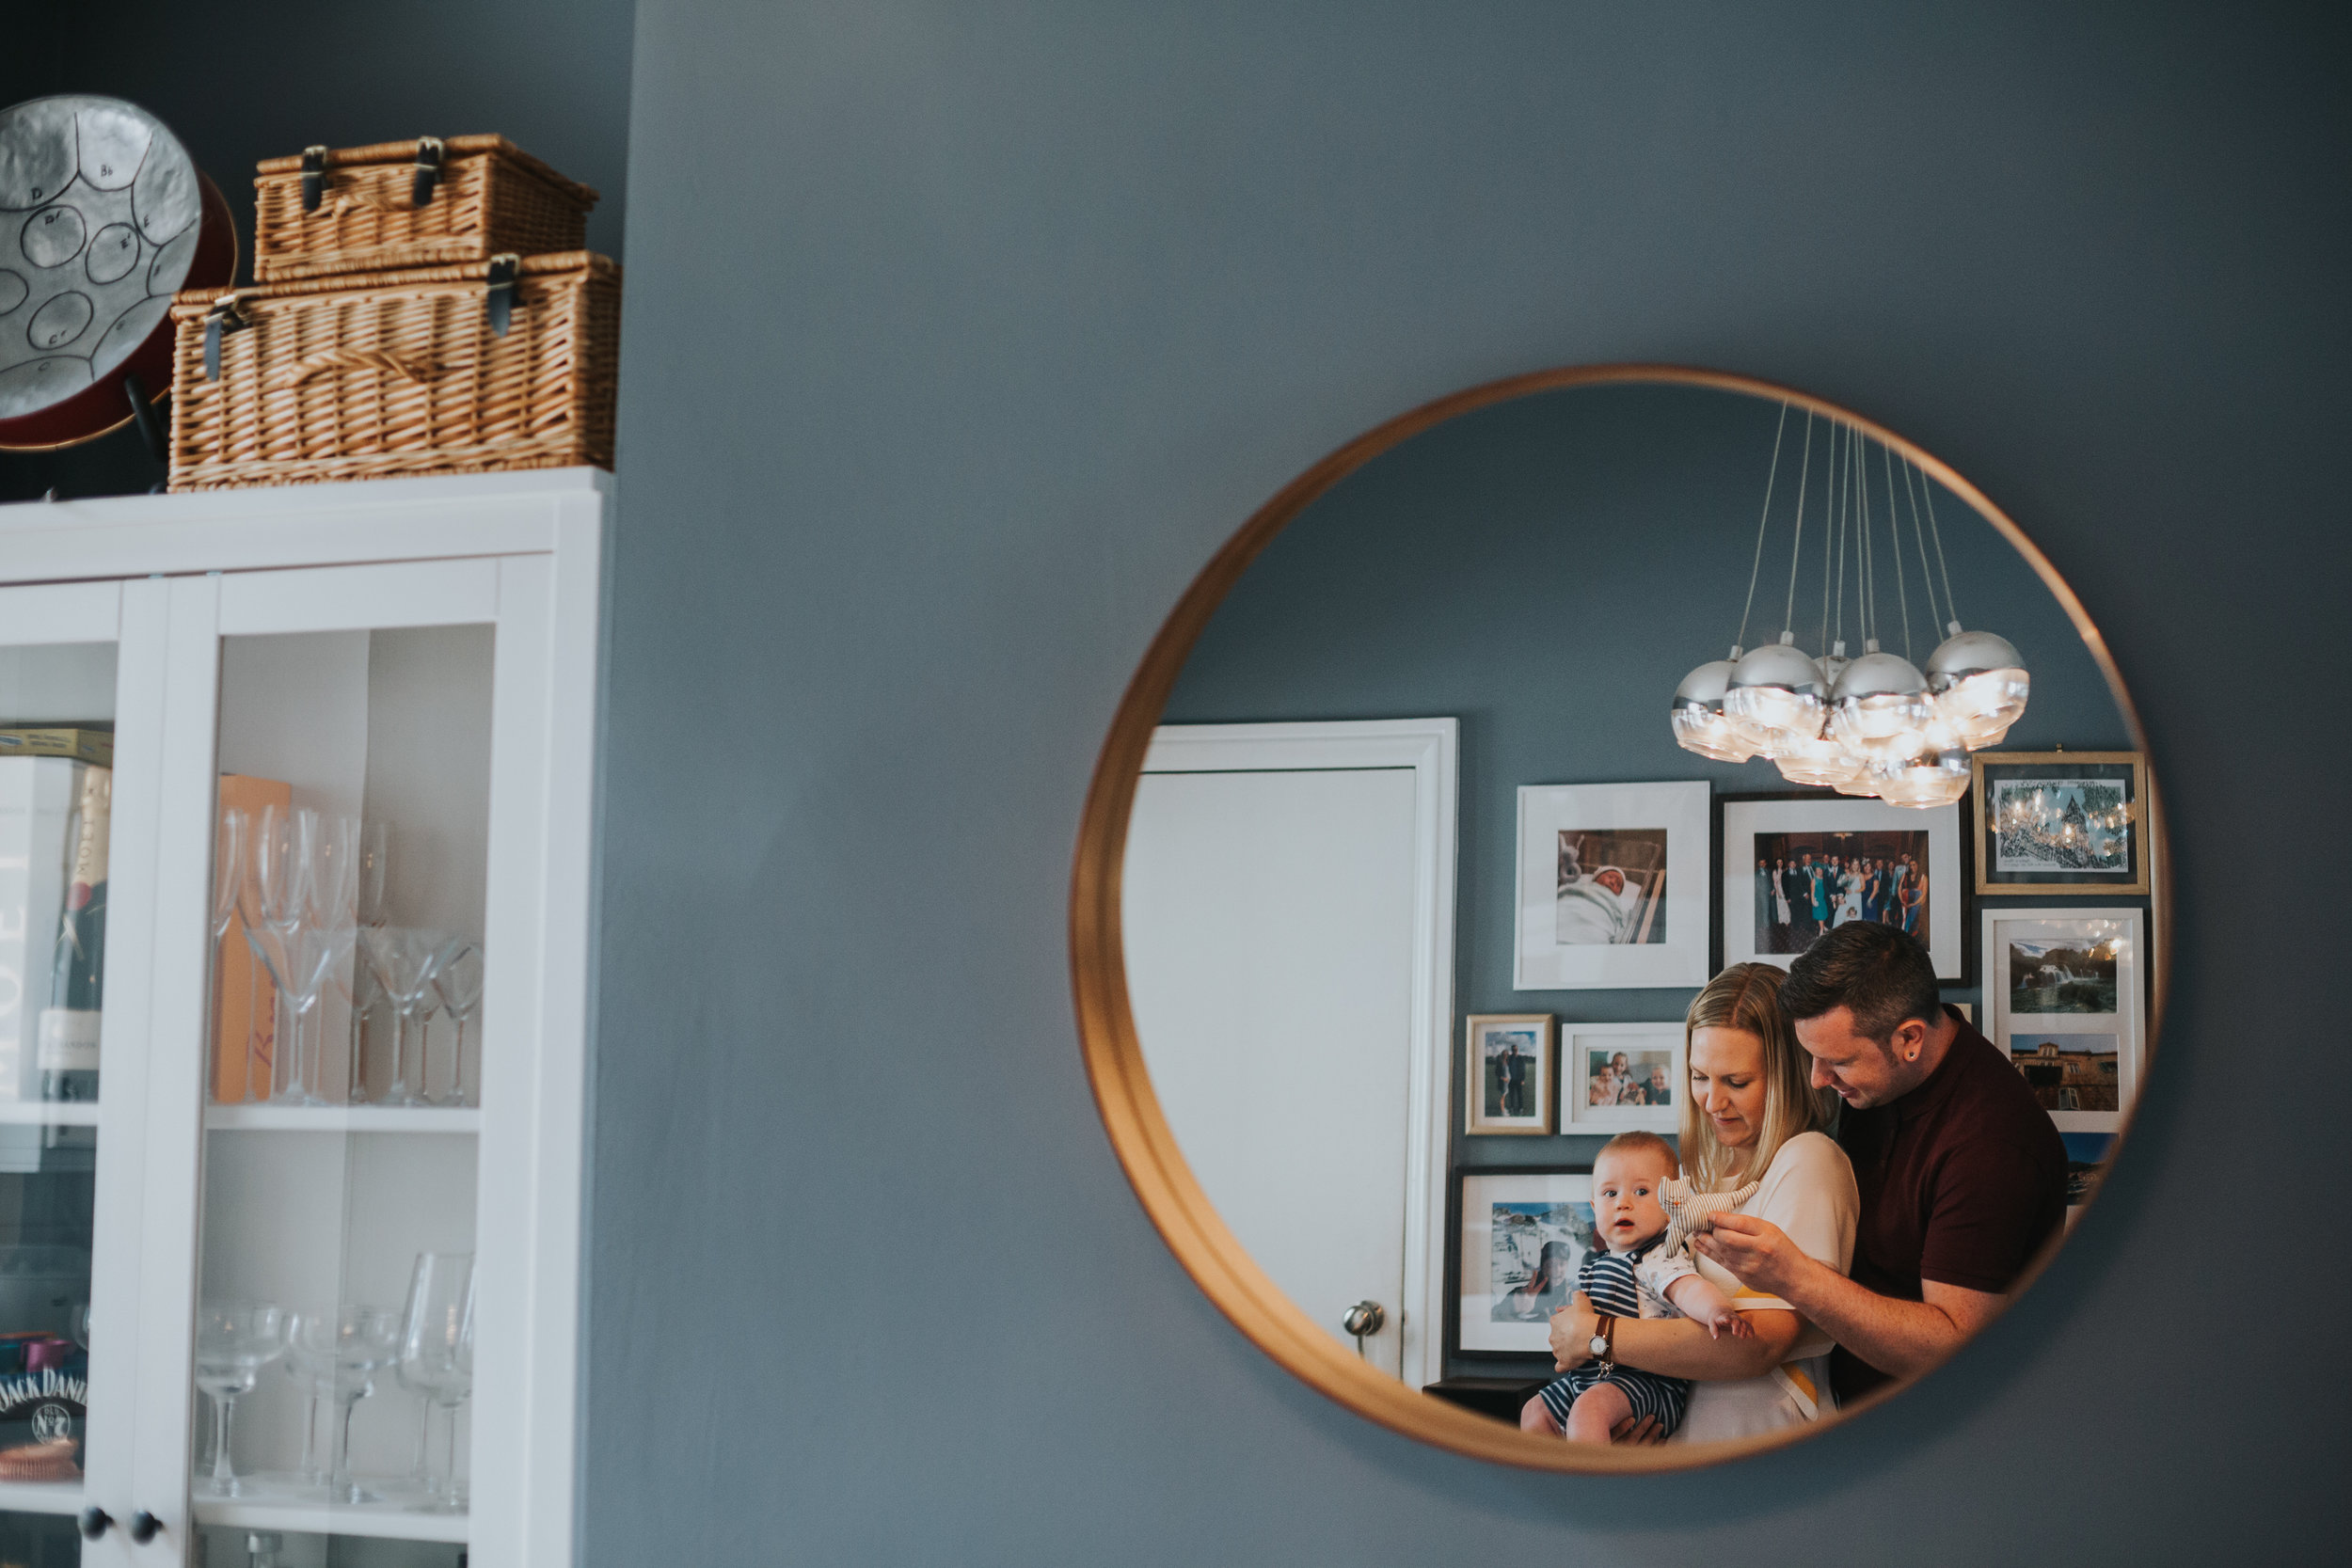 Families reflection in mirror.